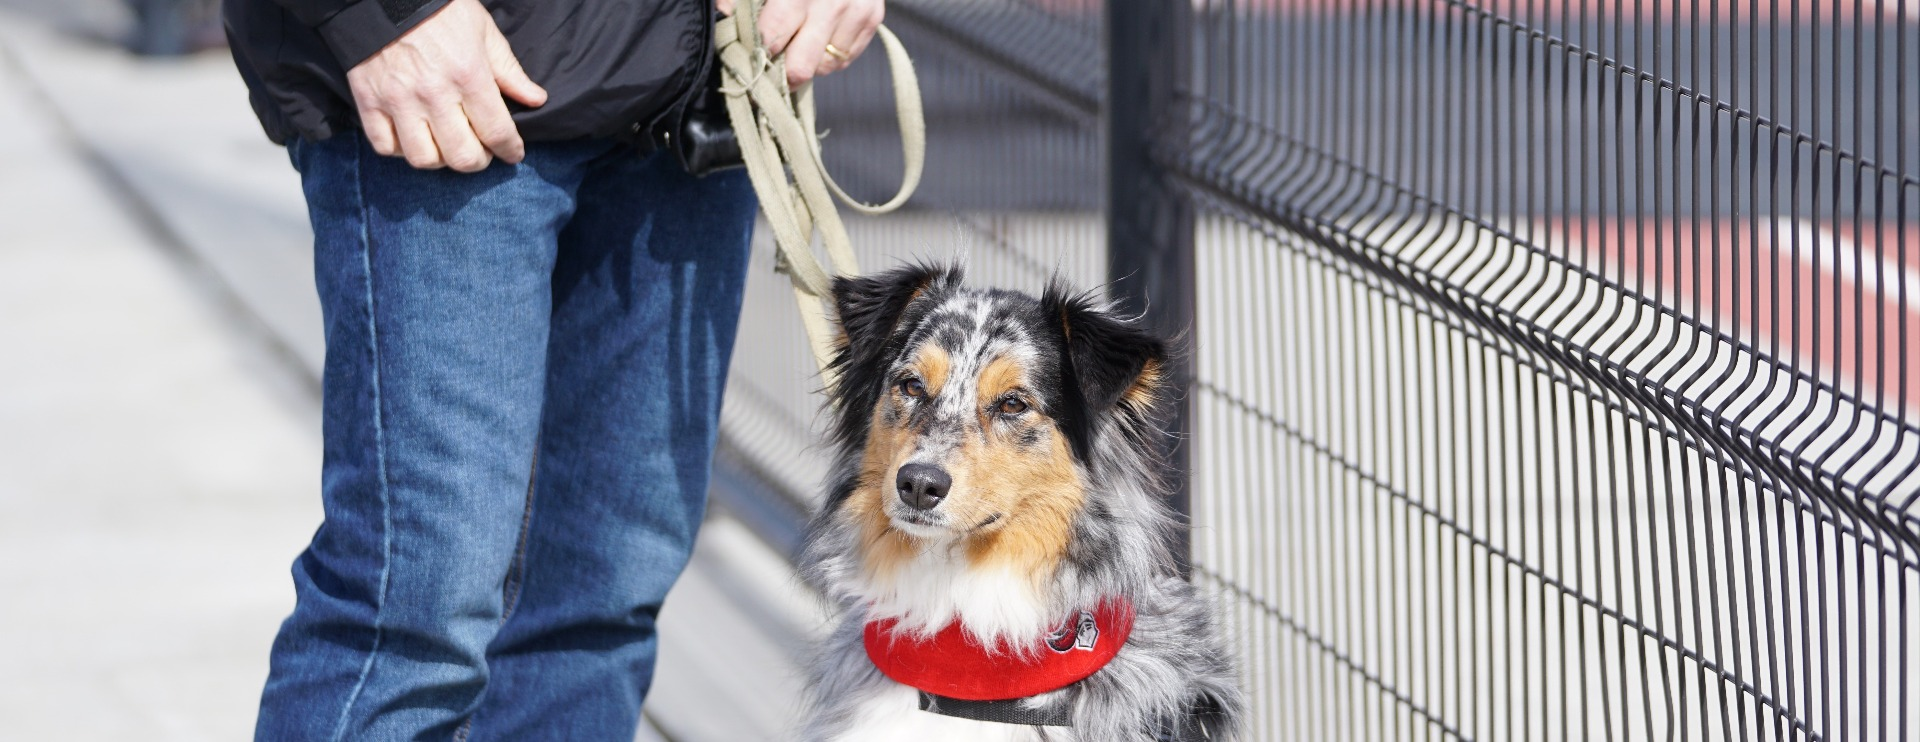 Keeping Canines Out Of The Cold: Electric Panel Heaters For Kennels